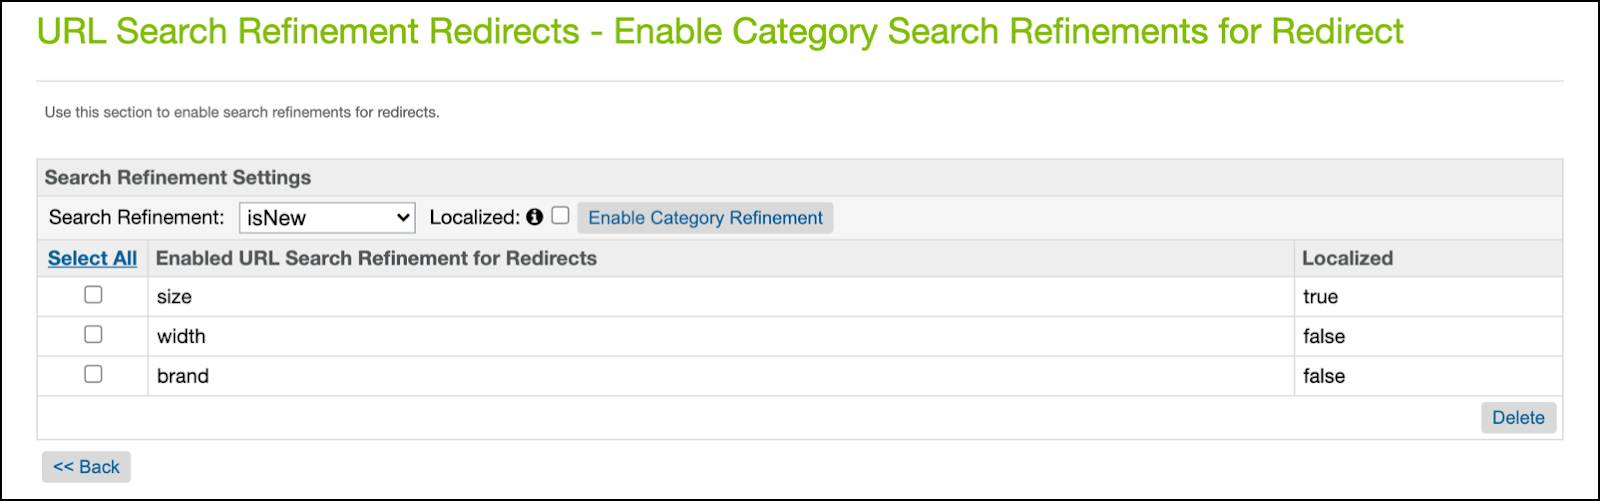 Business Manager, enabled category search refinements: size, brand, and width